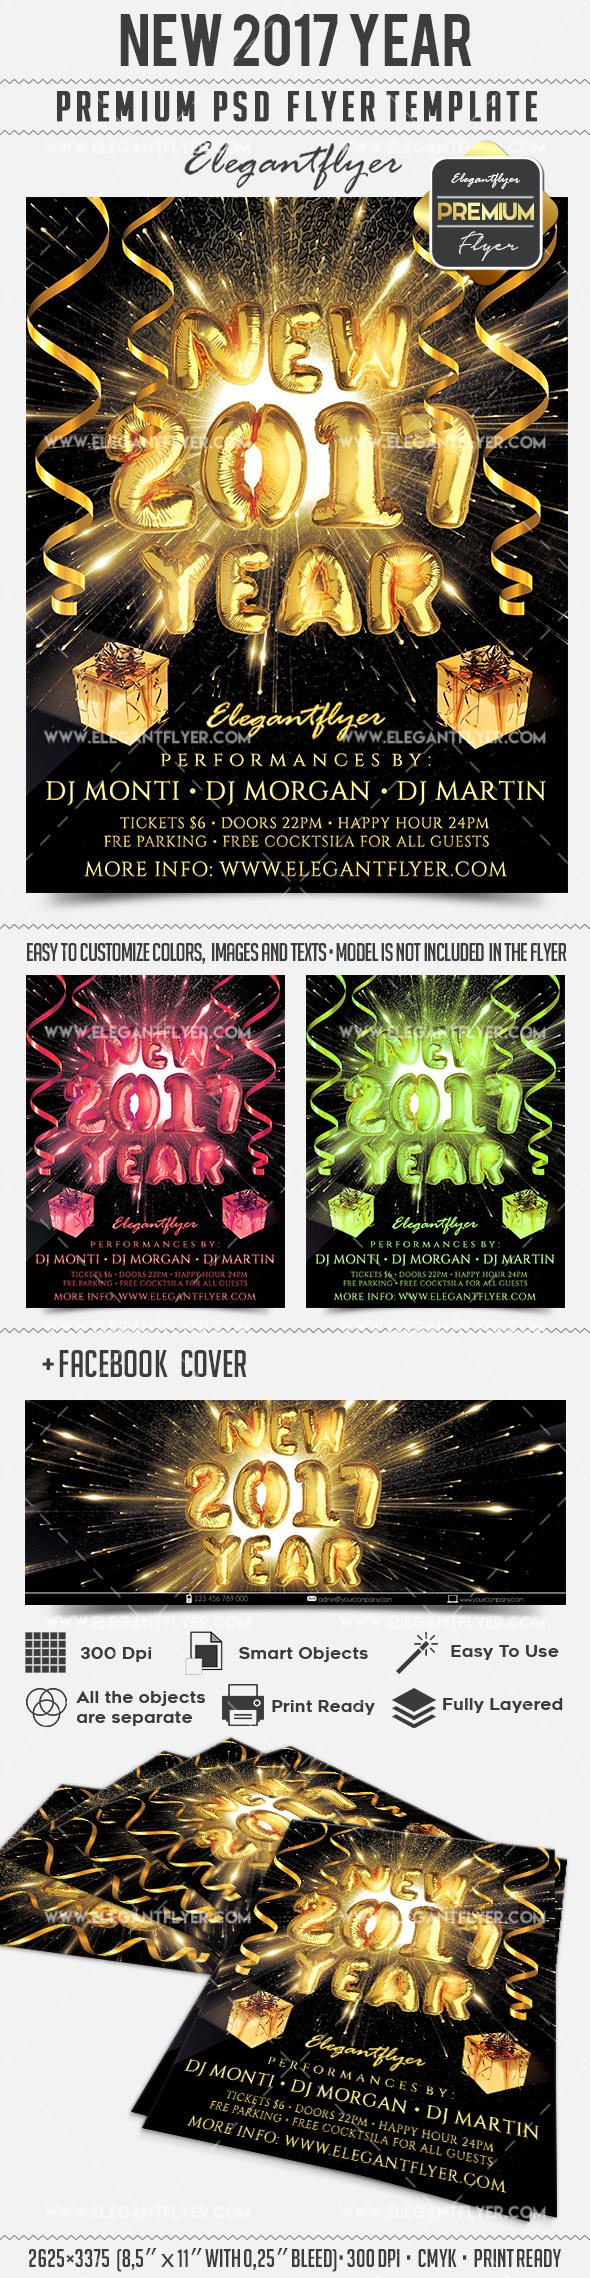 Flyer for New Years Balloon